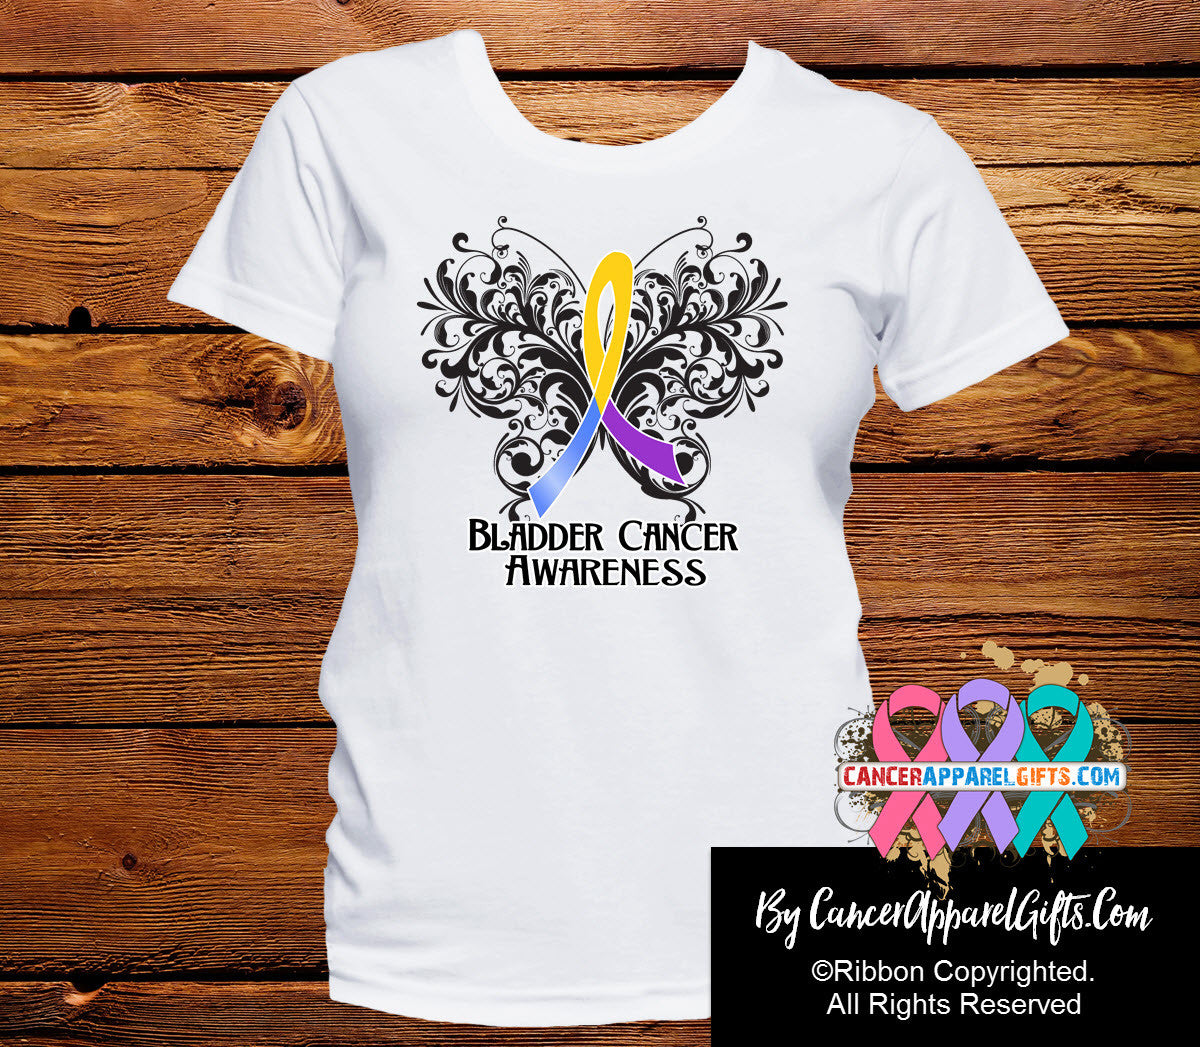 Bladder Cancer Butterfly Ribbon Shirts - Cancer Apparel and Gifts